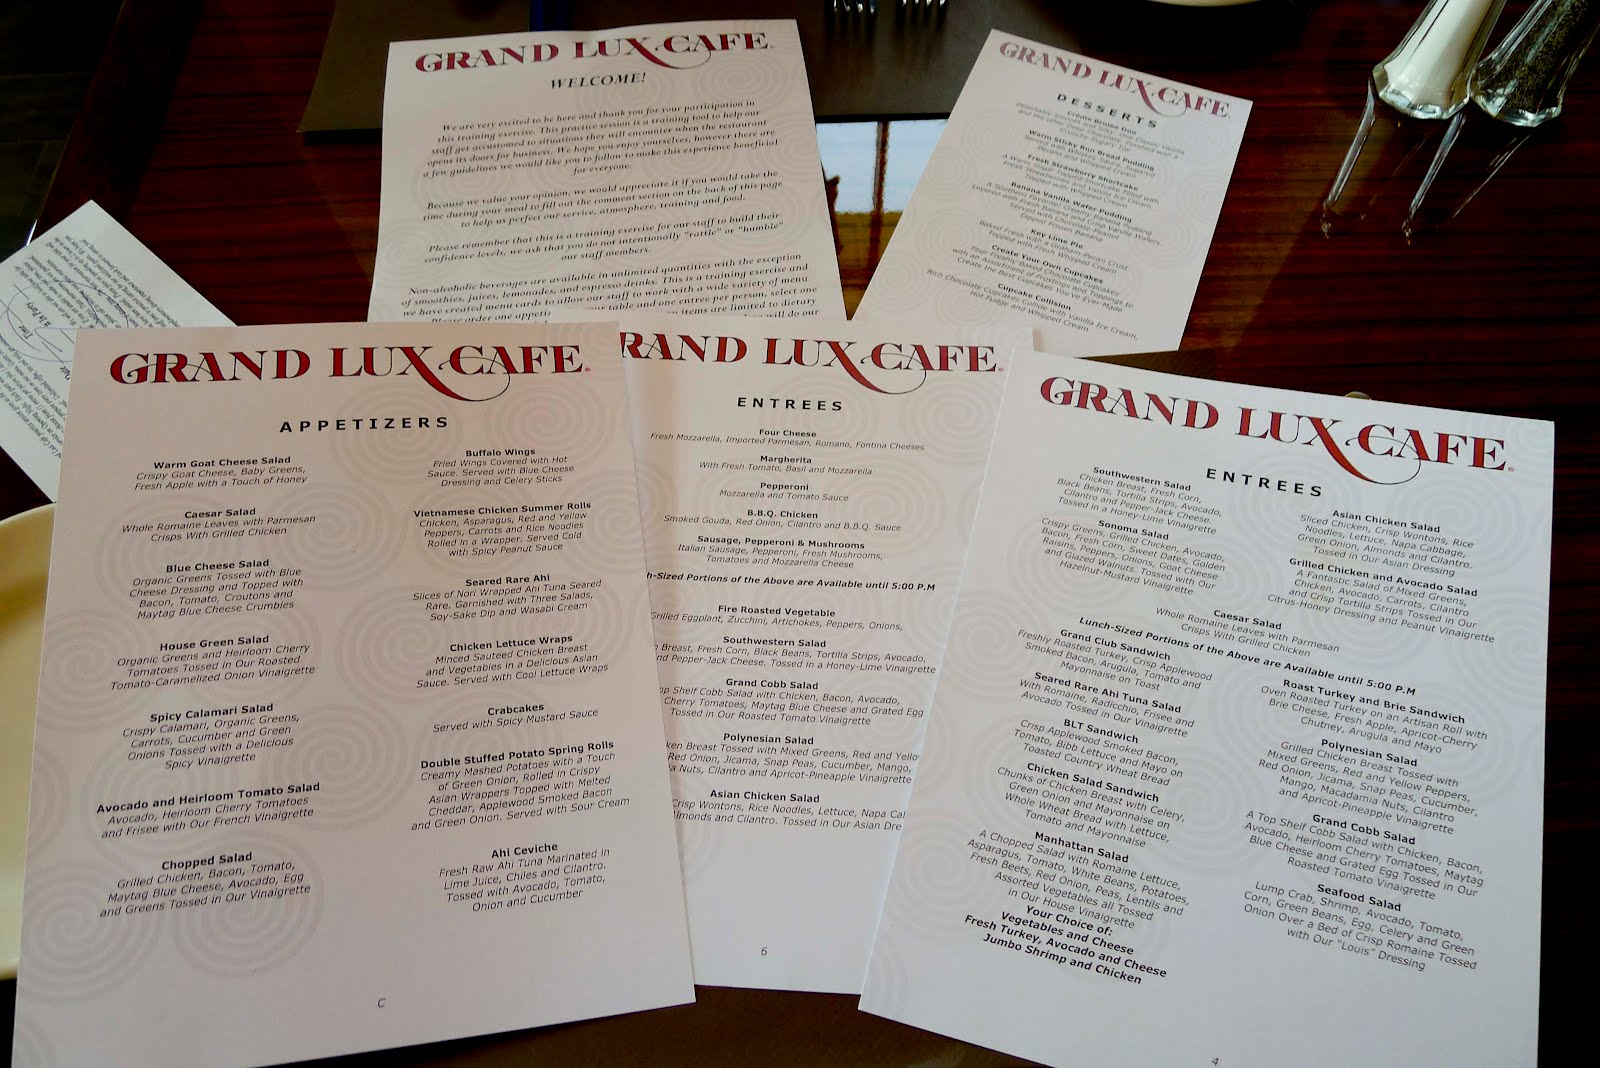 Grand Lux Cafe Cooks